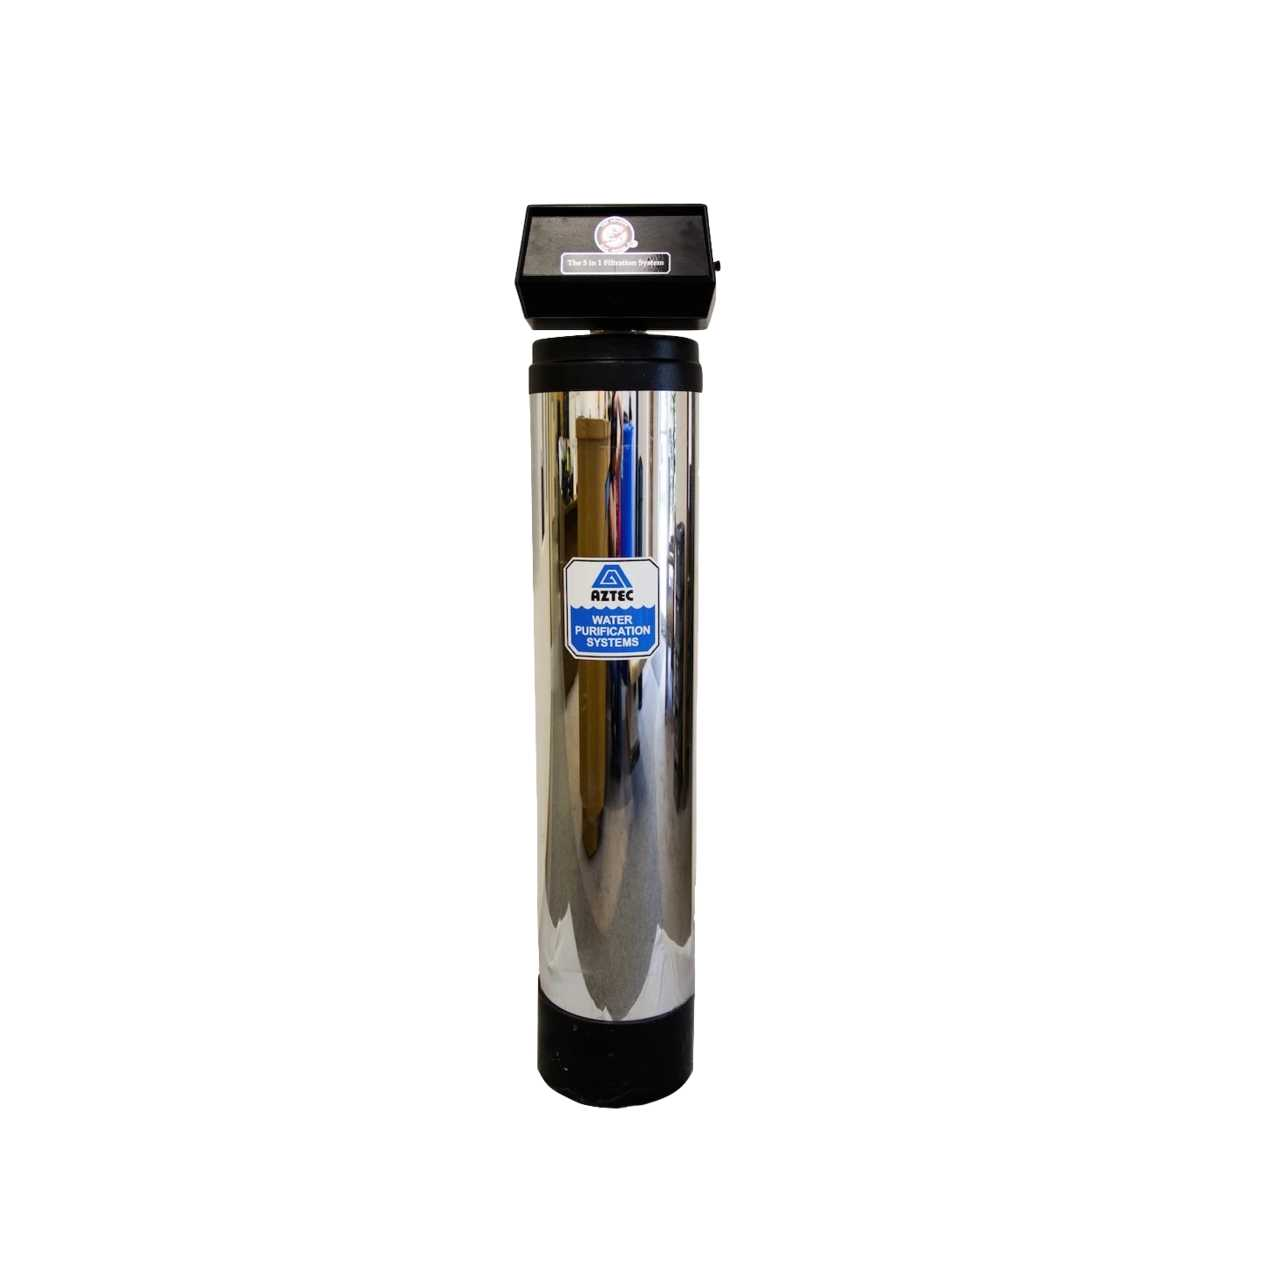 RUST BUSTER PLUS 5-IN-1 WATER FILTRATION SYSTEM